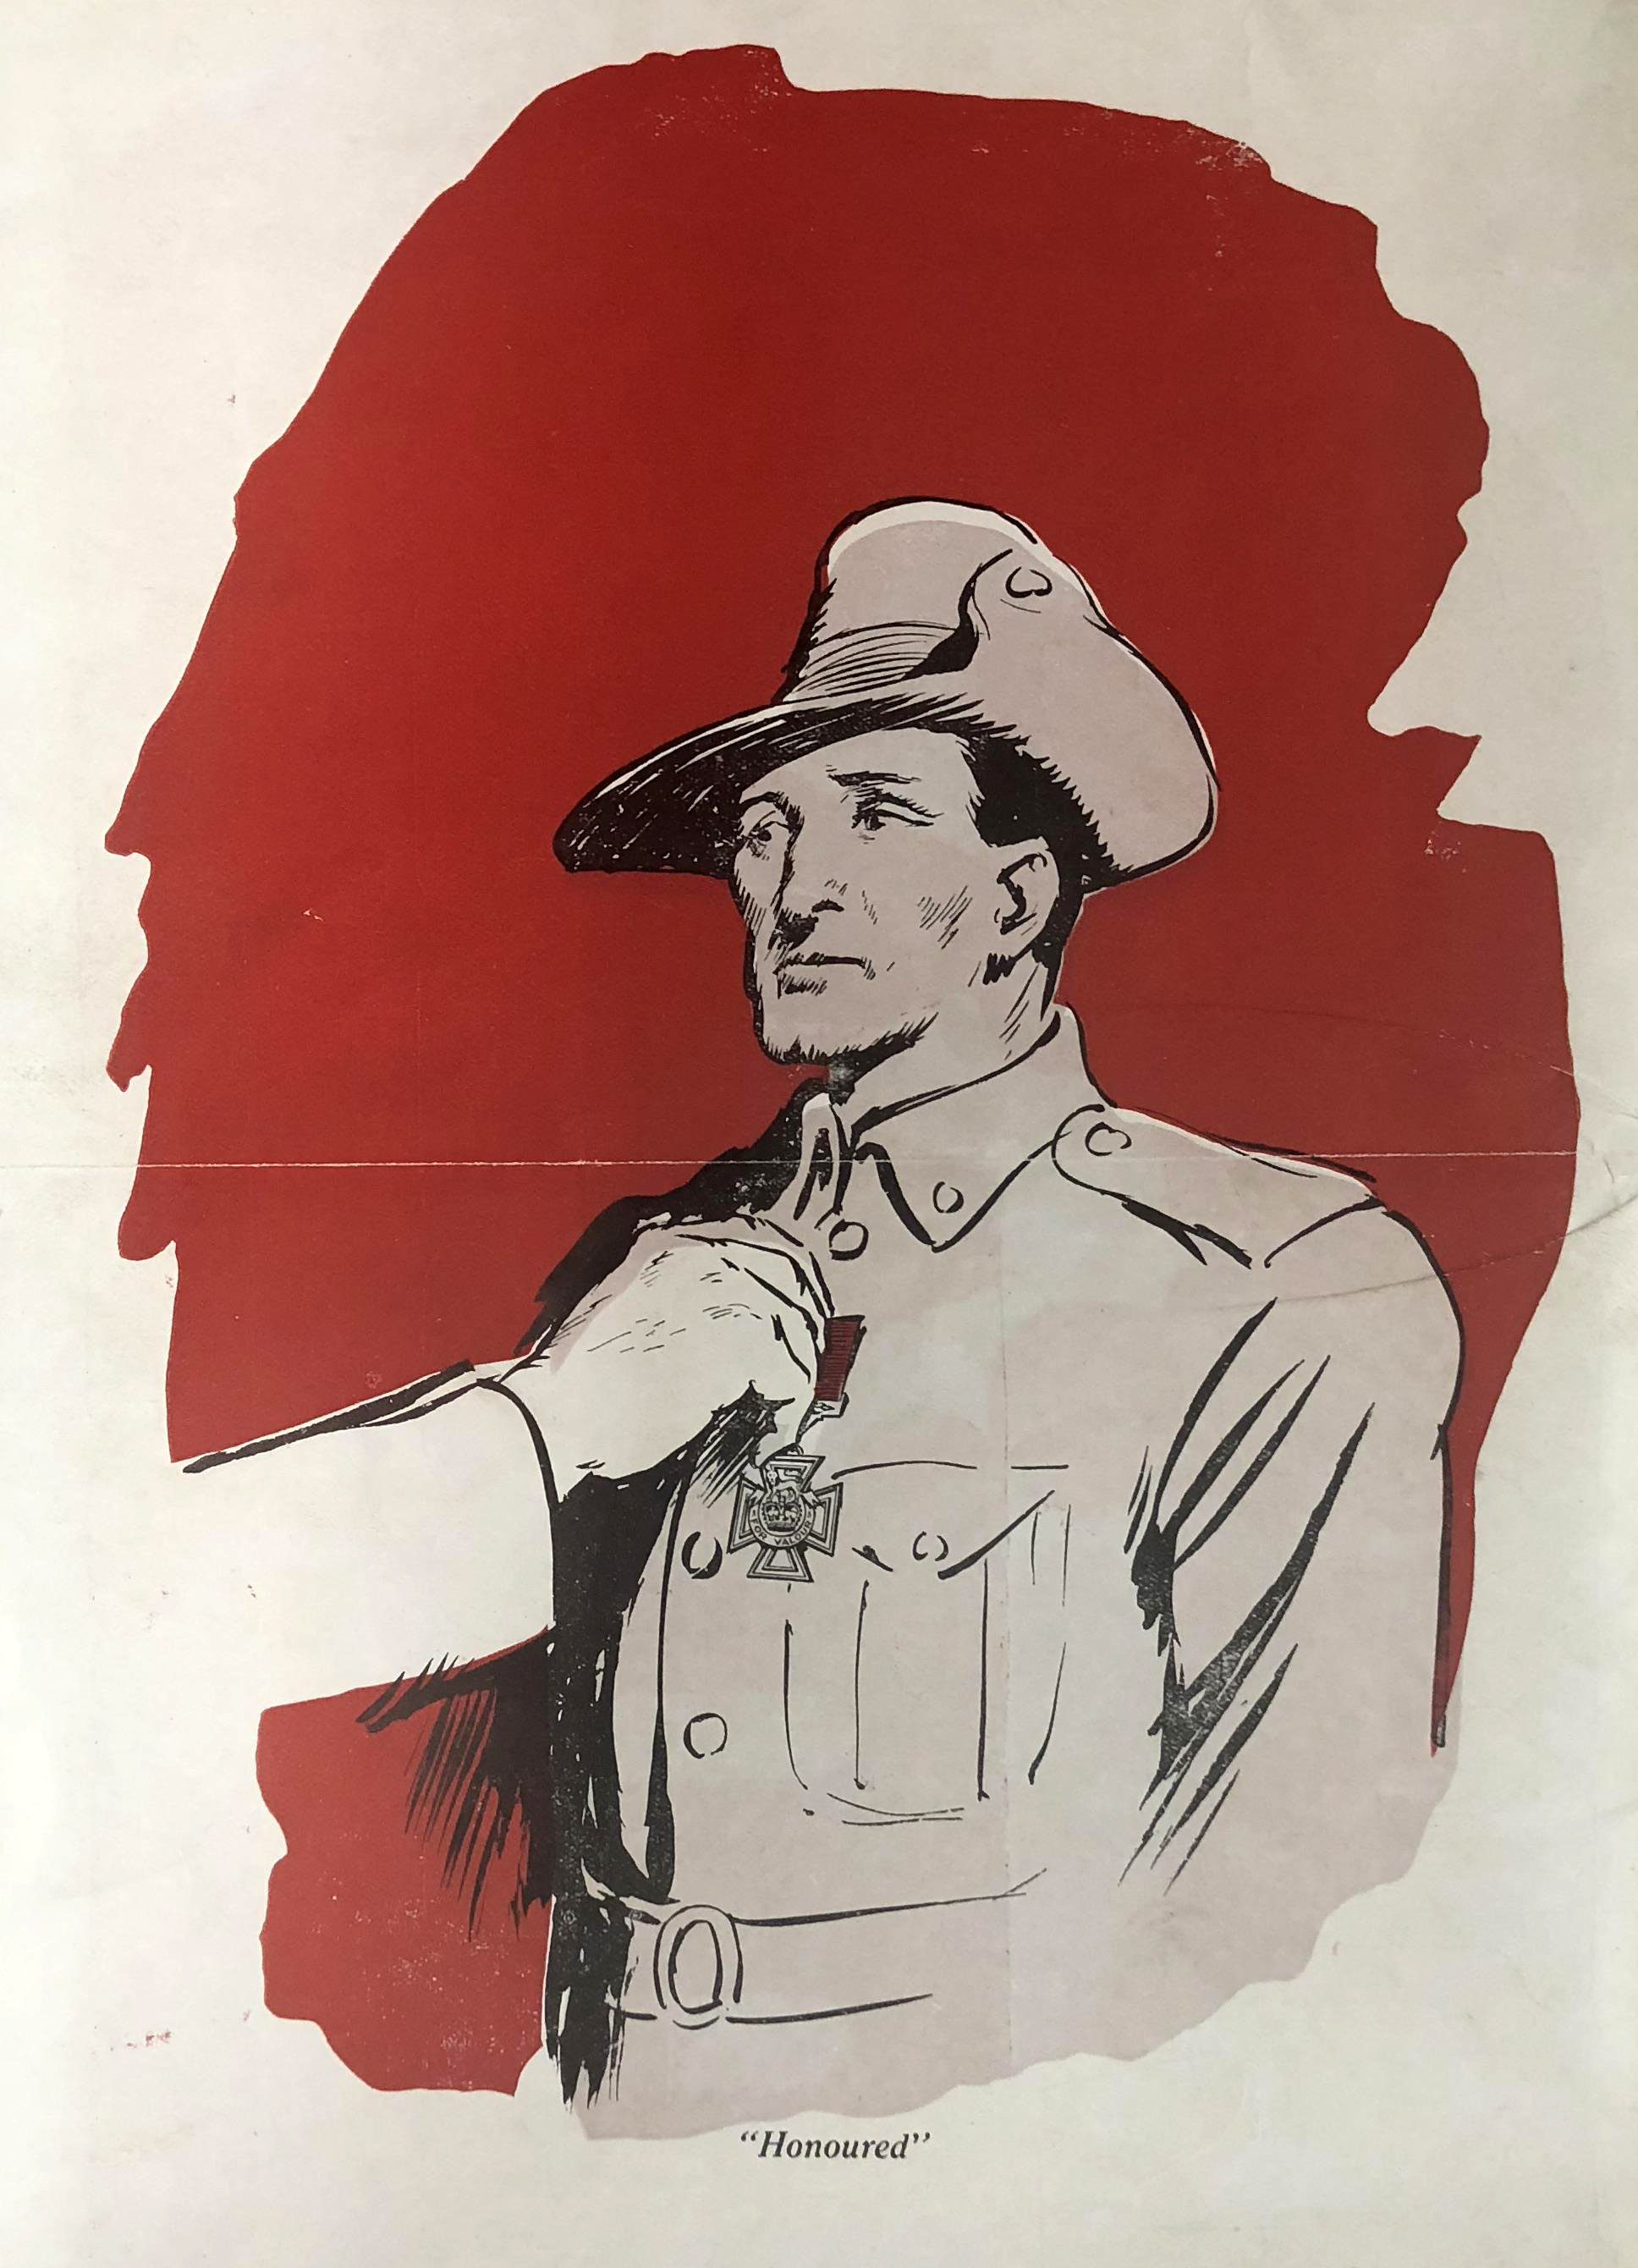 a painting of a soldier surrounded by a red circle and a hand placing a medal on his chest